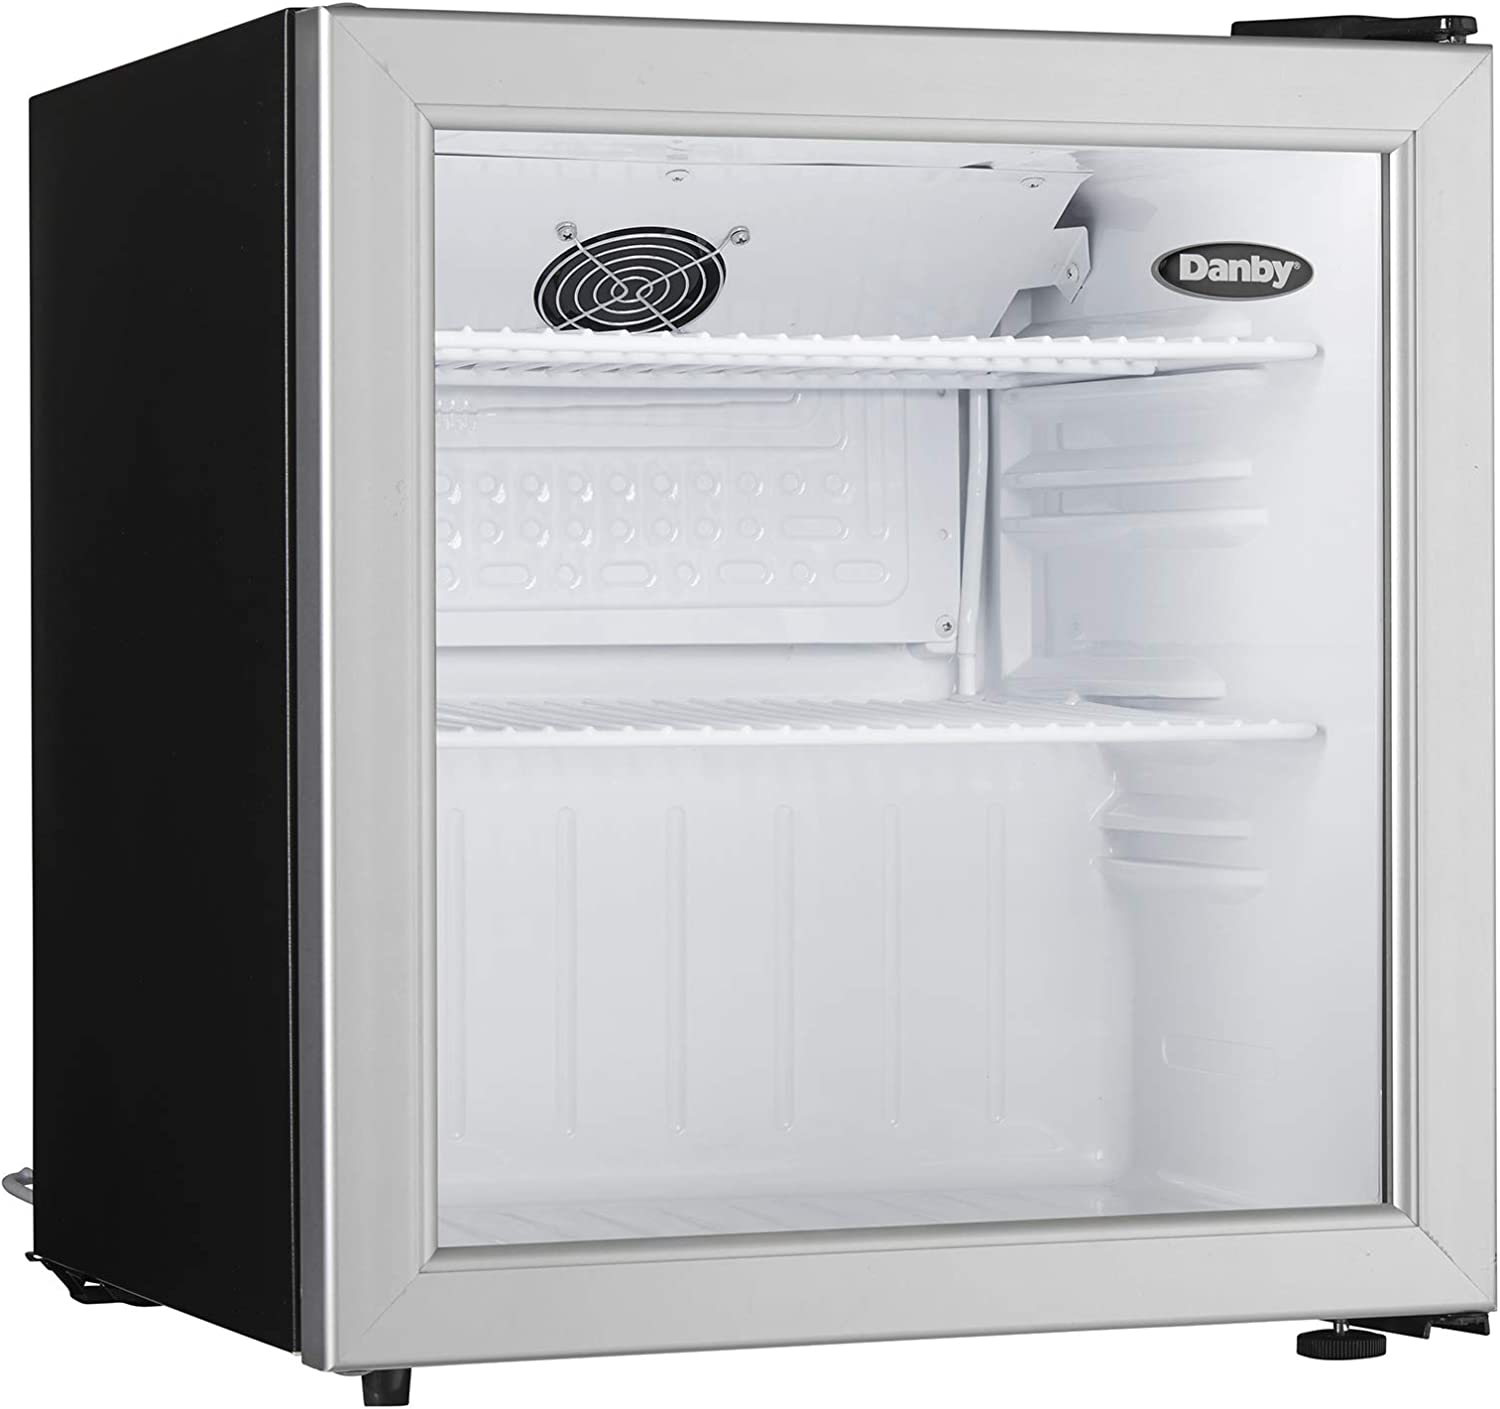 Danby DAG016A1BDB Commercial All Glass Door Compact Refrigerator, silver